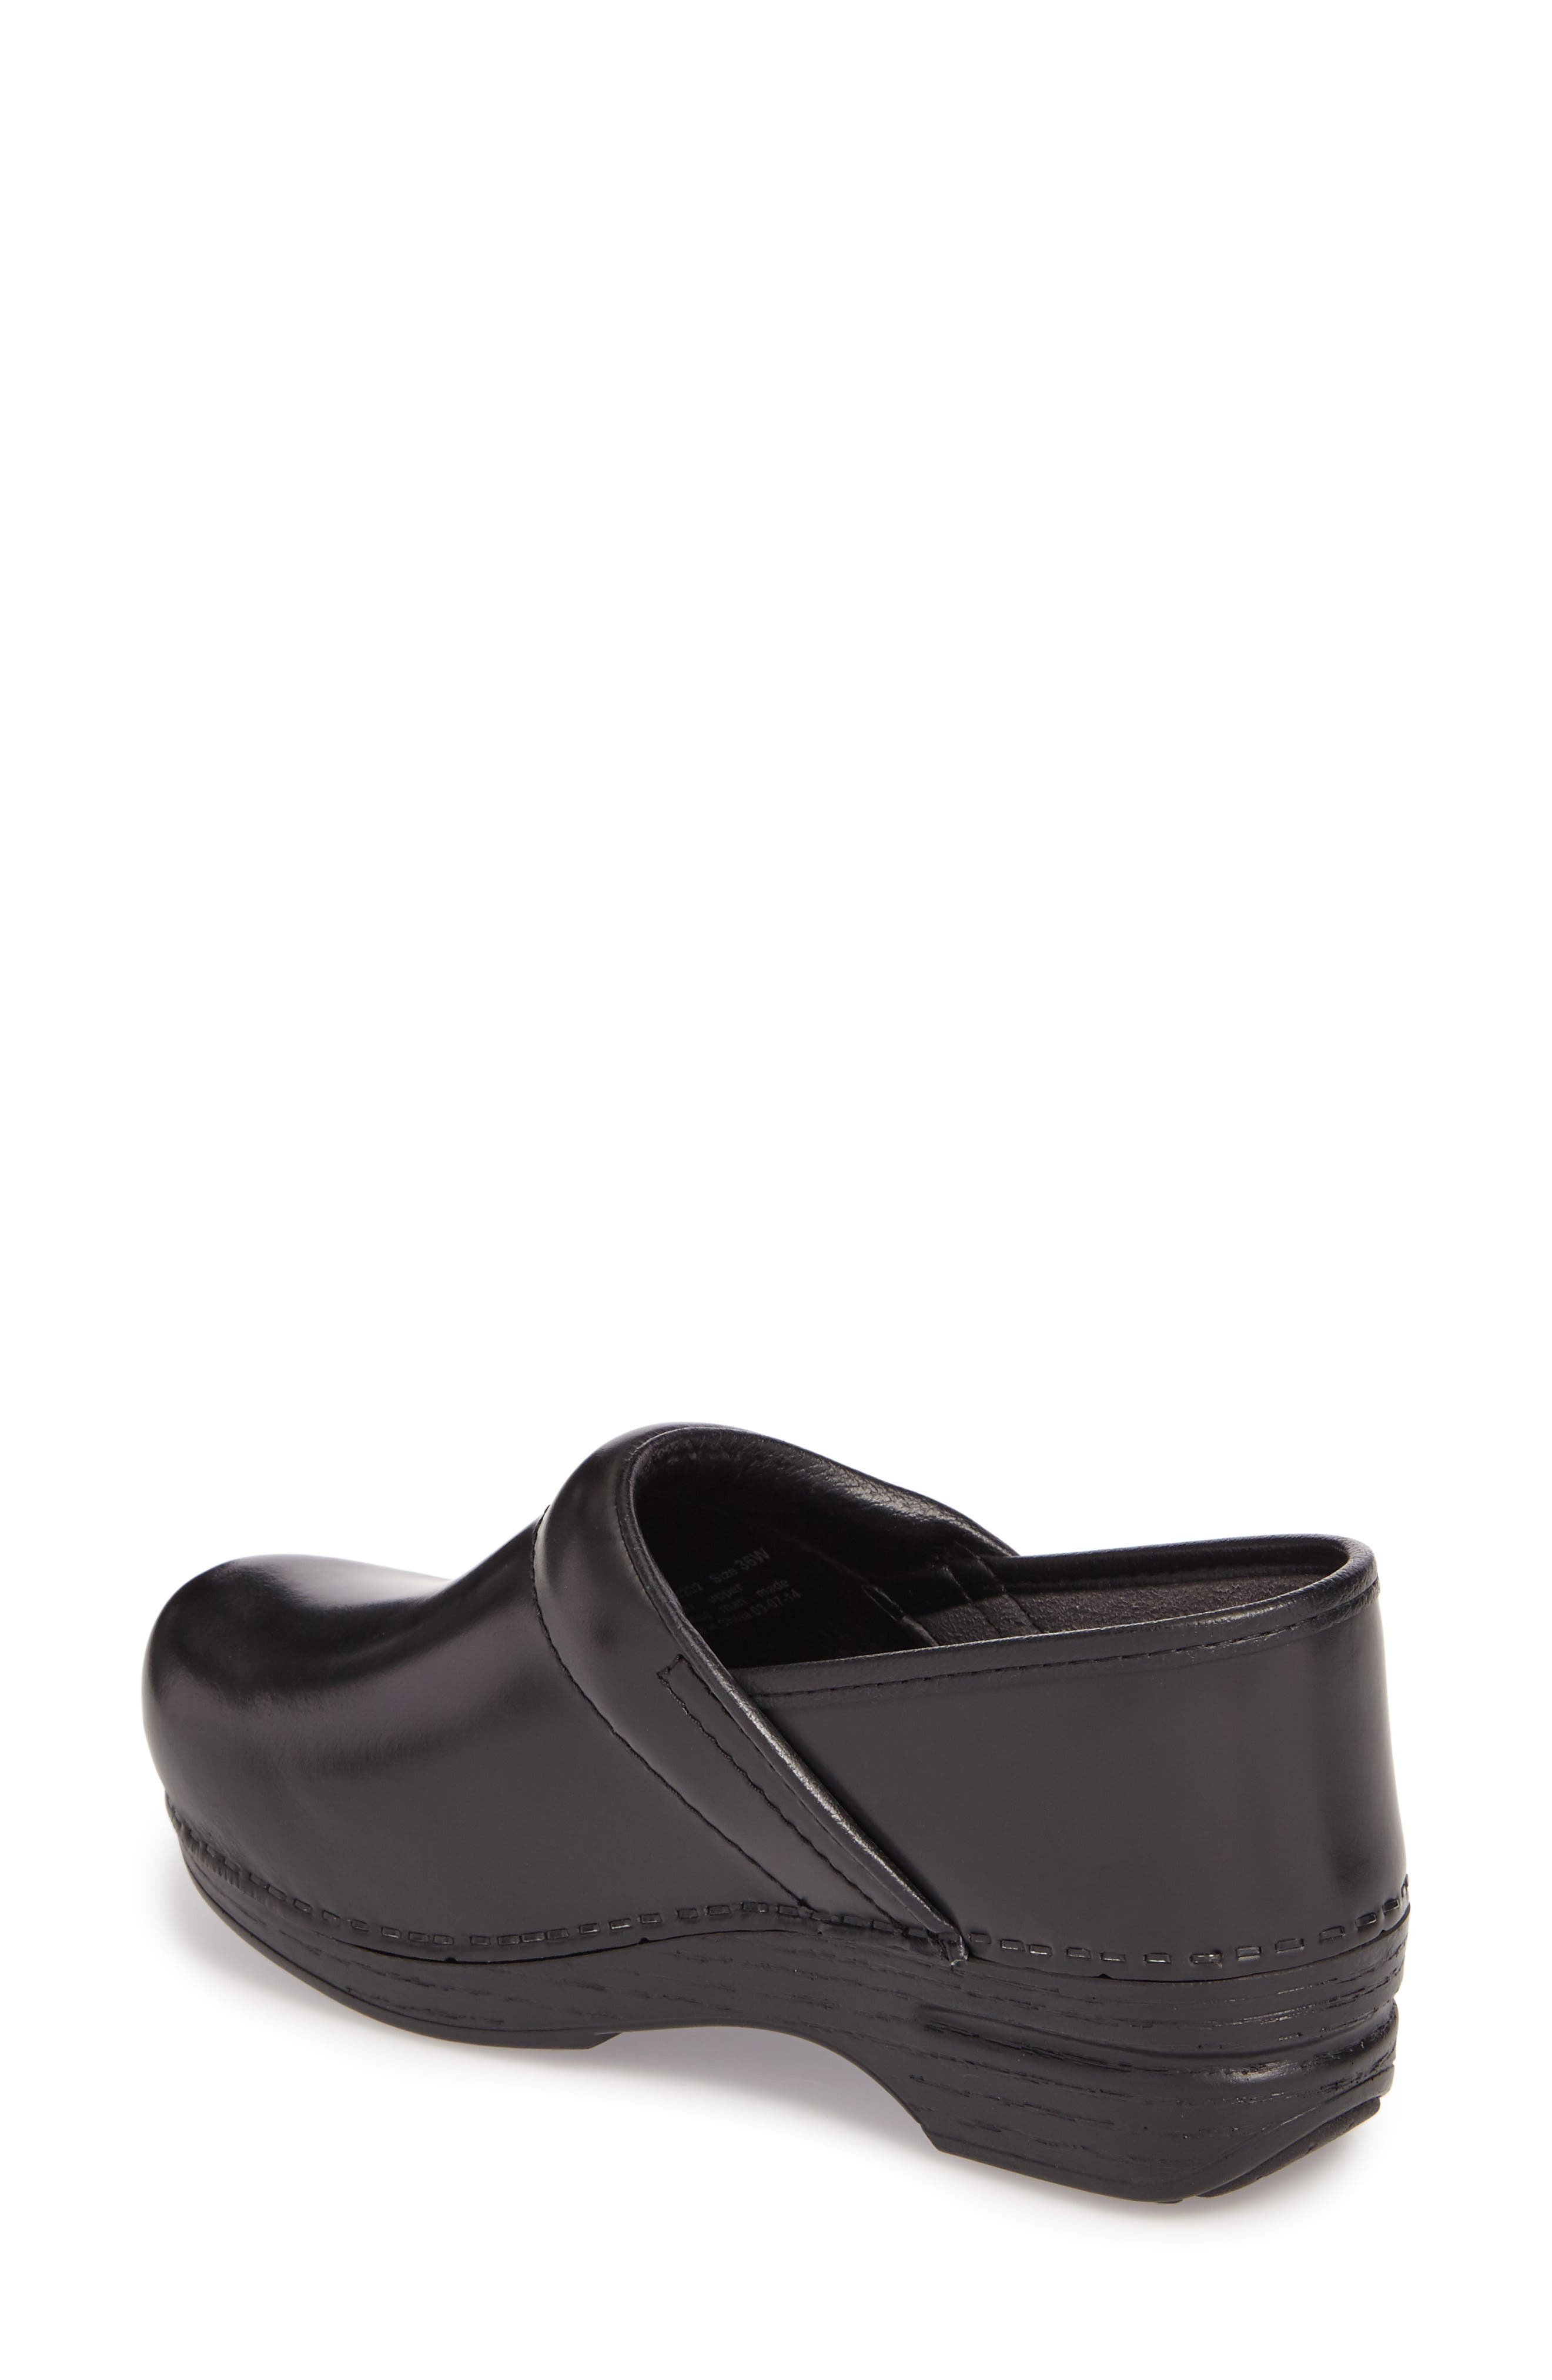 Wide Pro XP Clog,                             Alternate thumbnail 2, color,                             BLACK CABRIO LEATHER